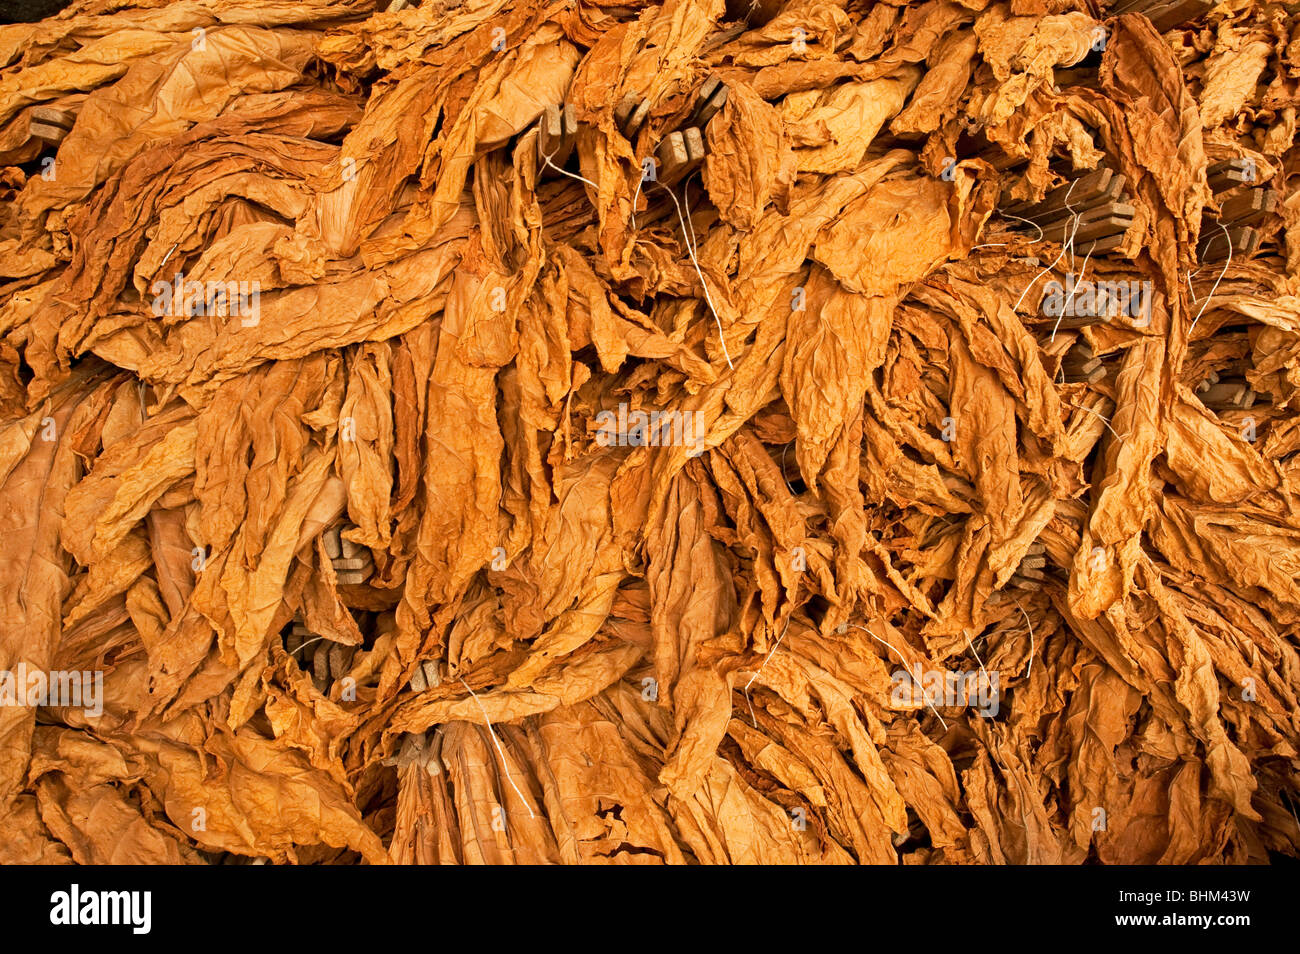 Tobacco leaves drying - Stock Image